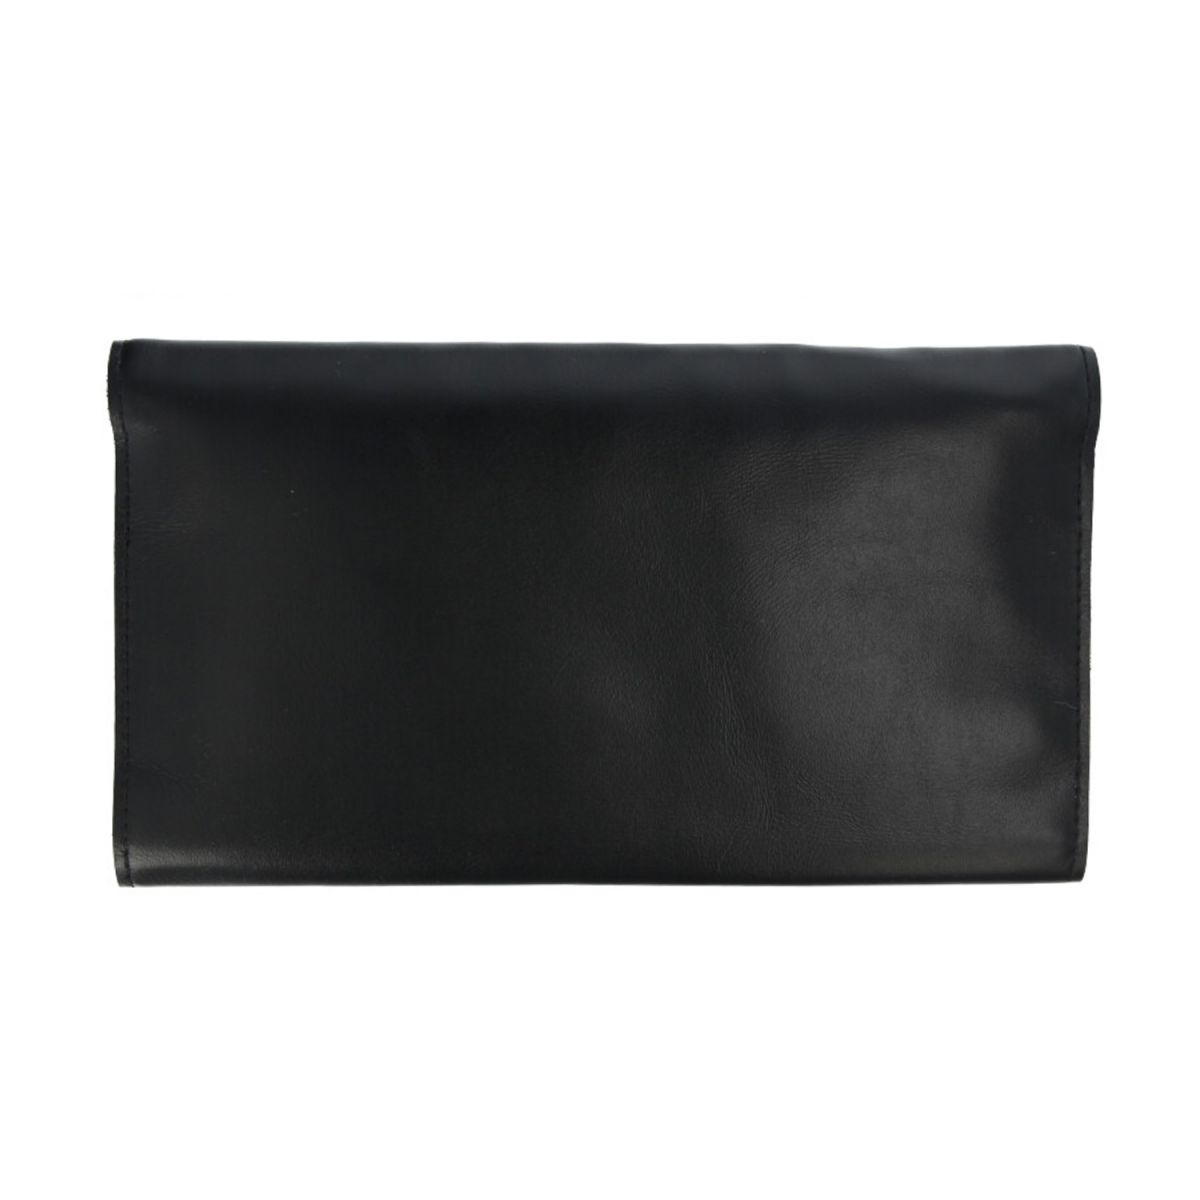 faraday phone wallet luxe leather black